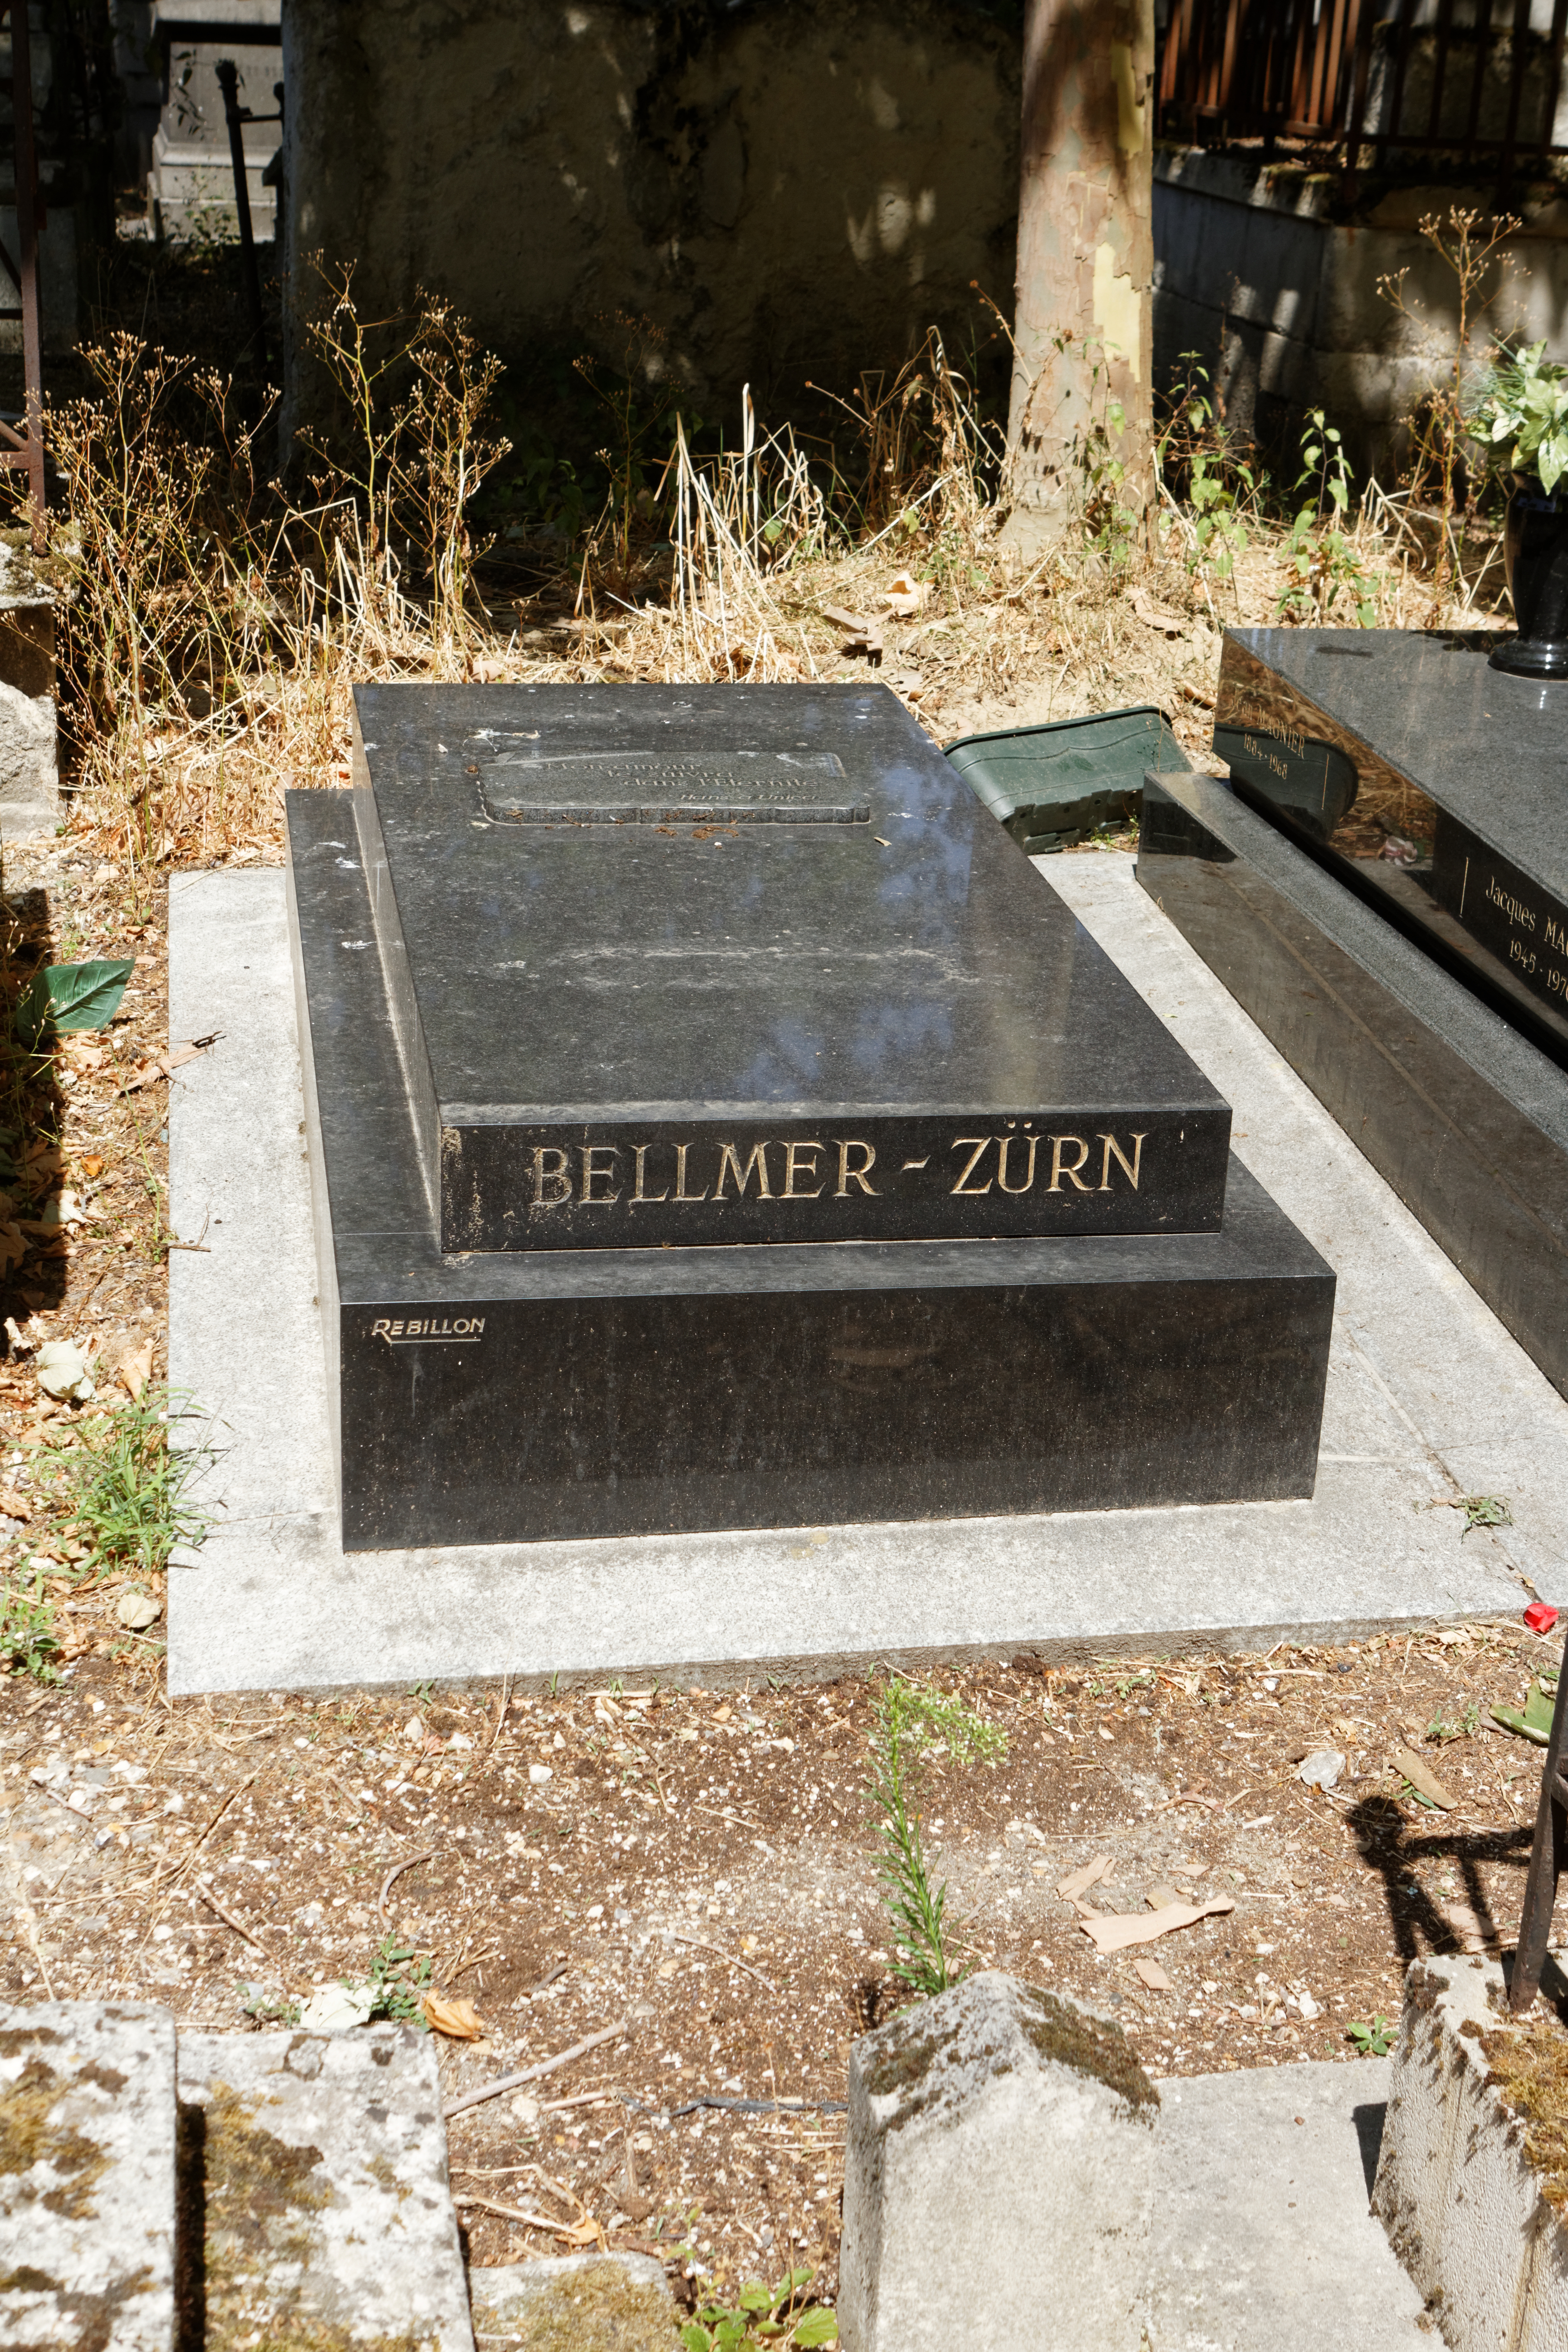 Bellmer and Zurn's gravestone at the [[Père-Lachaise cemetery